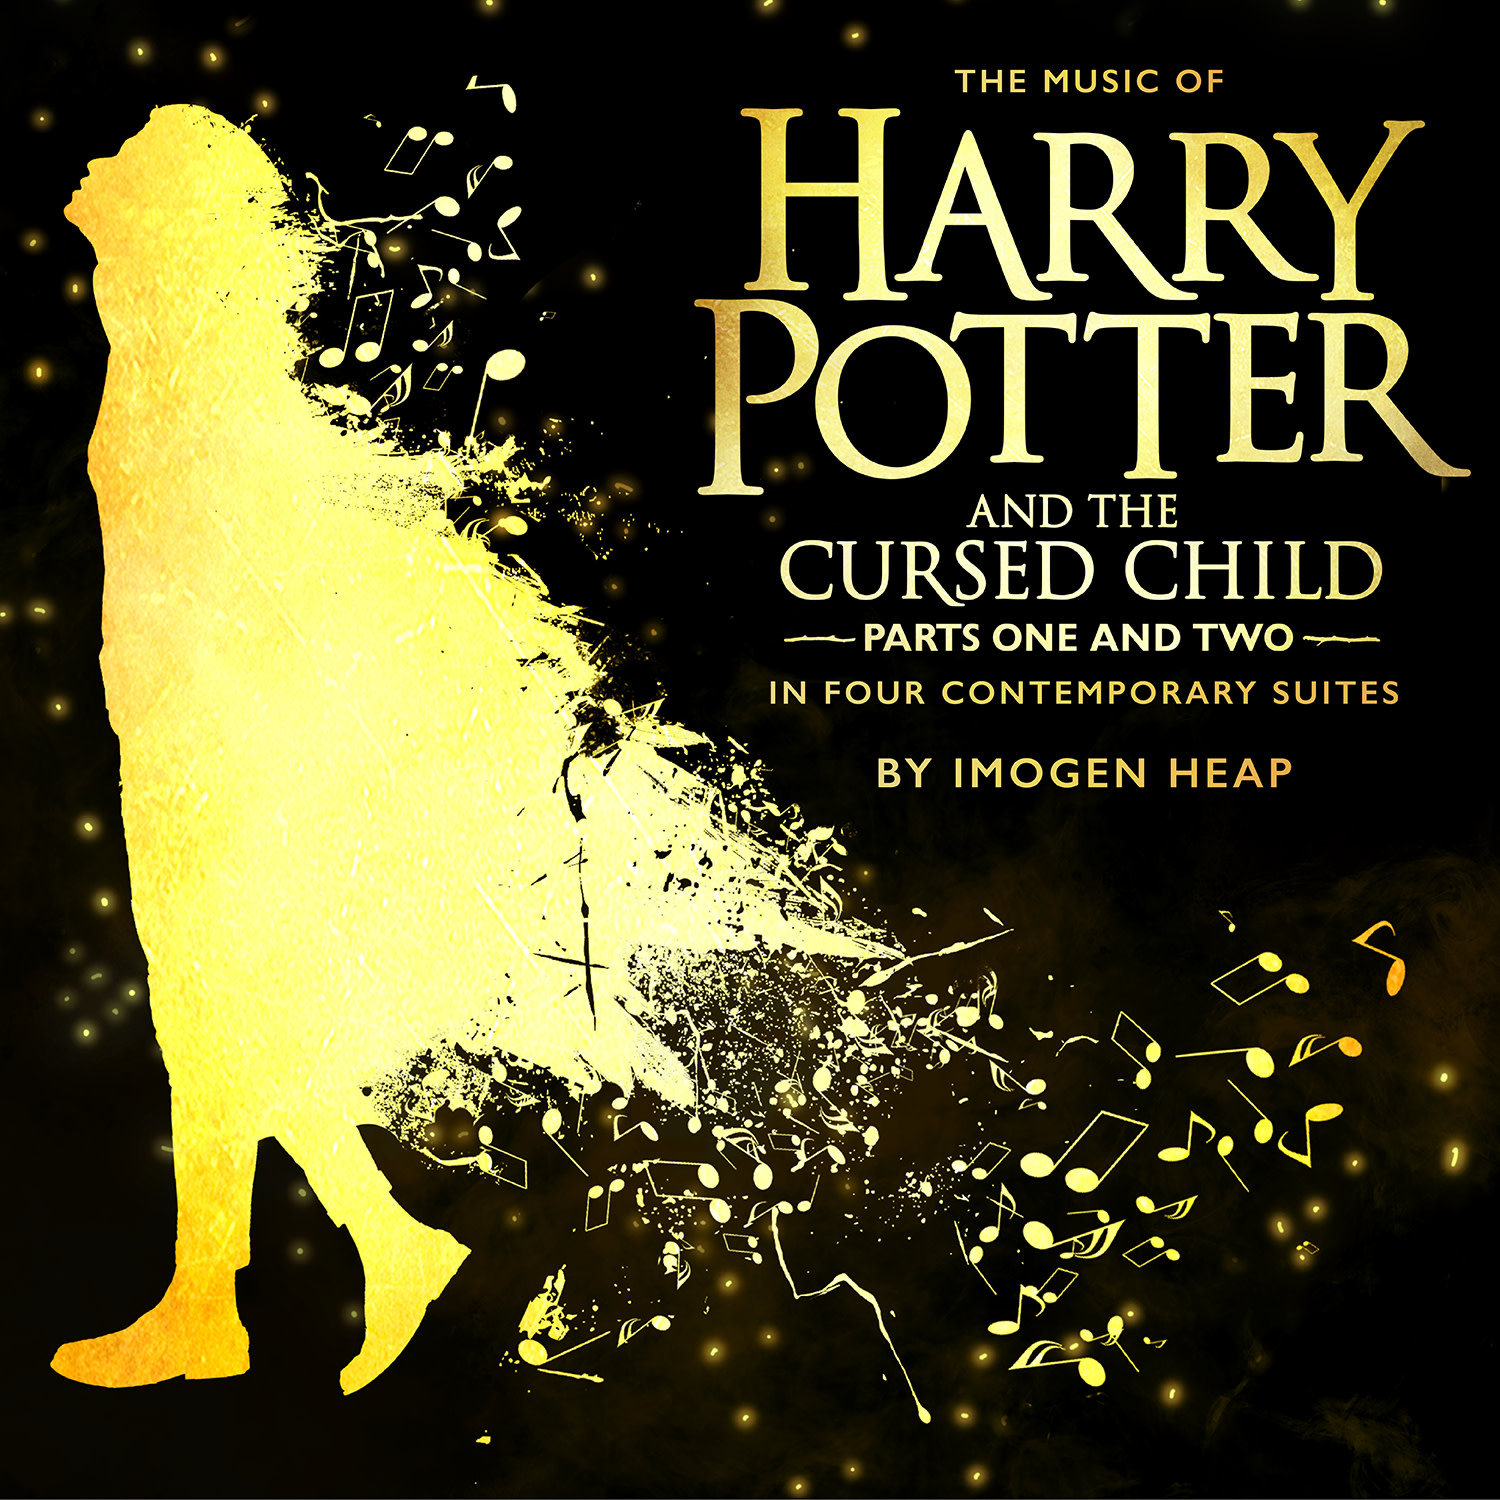 Harry Potter and the Cursed Child music album